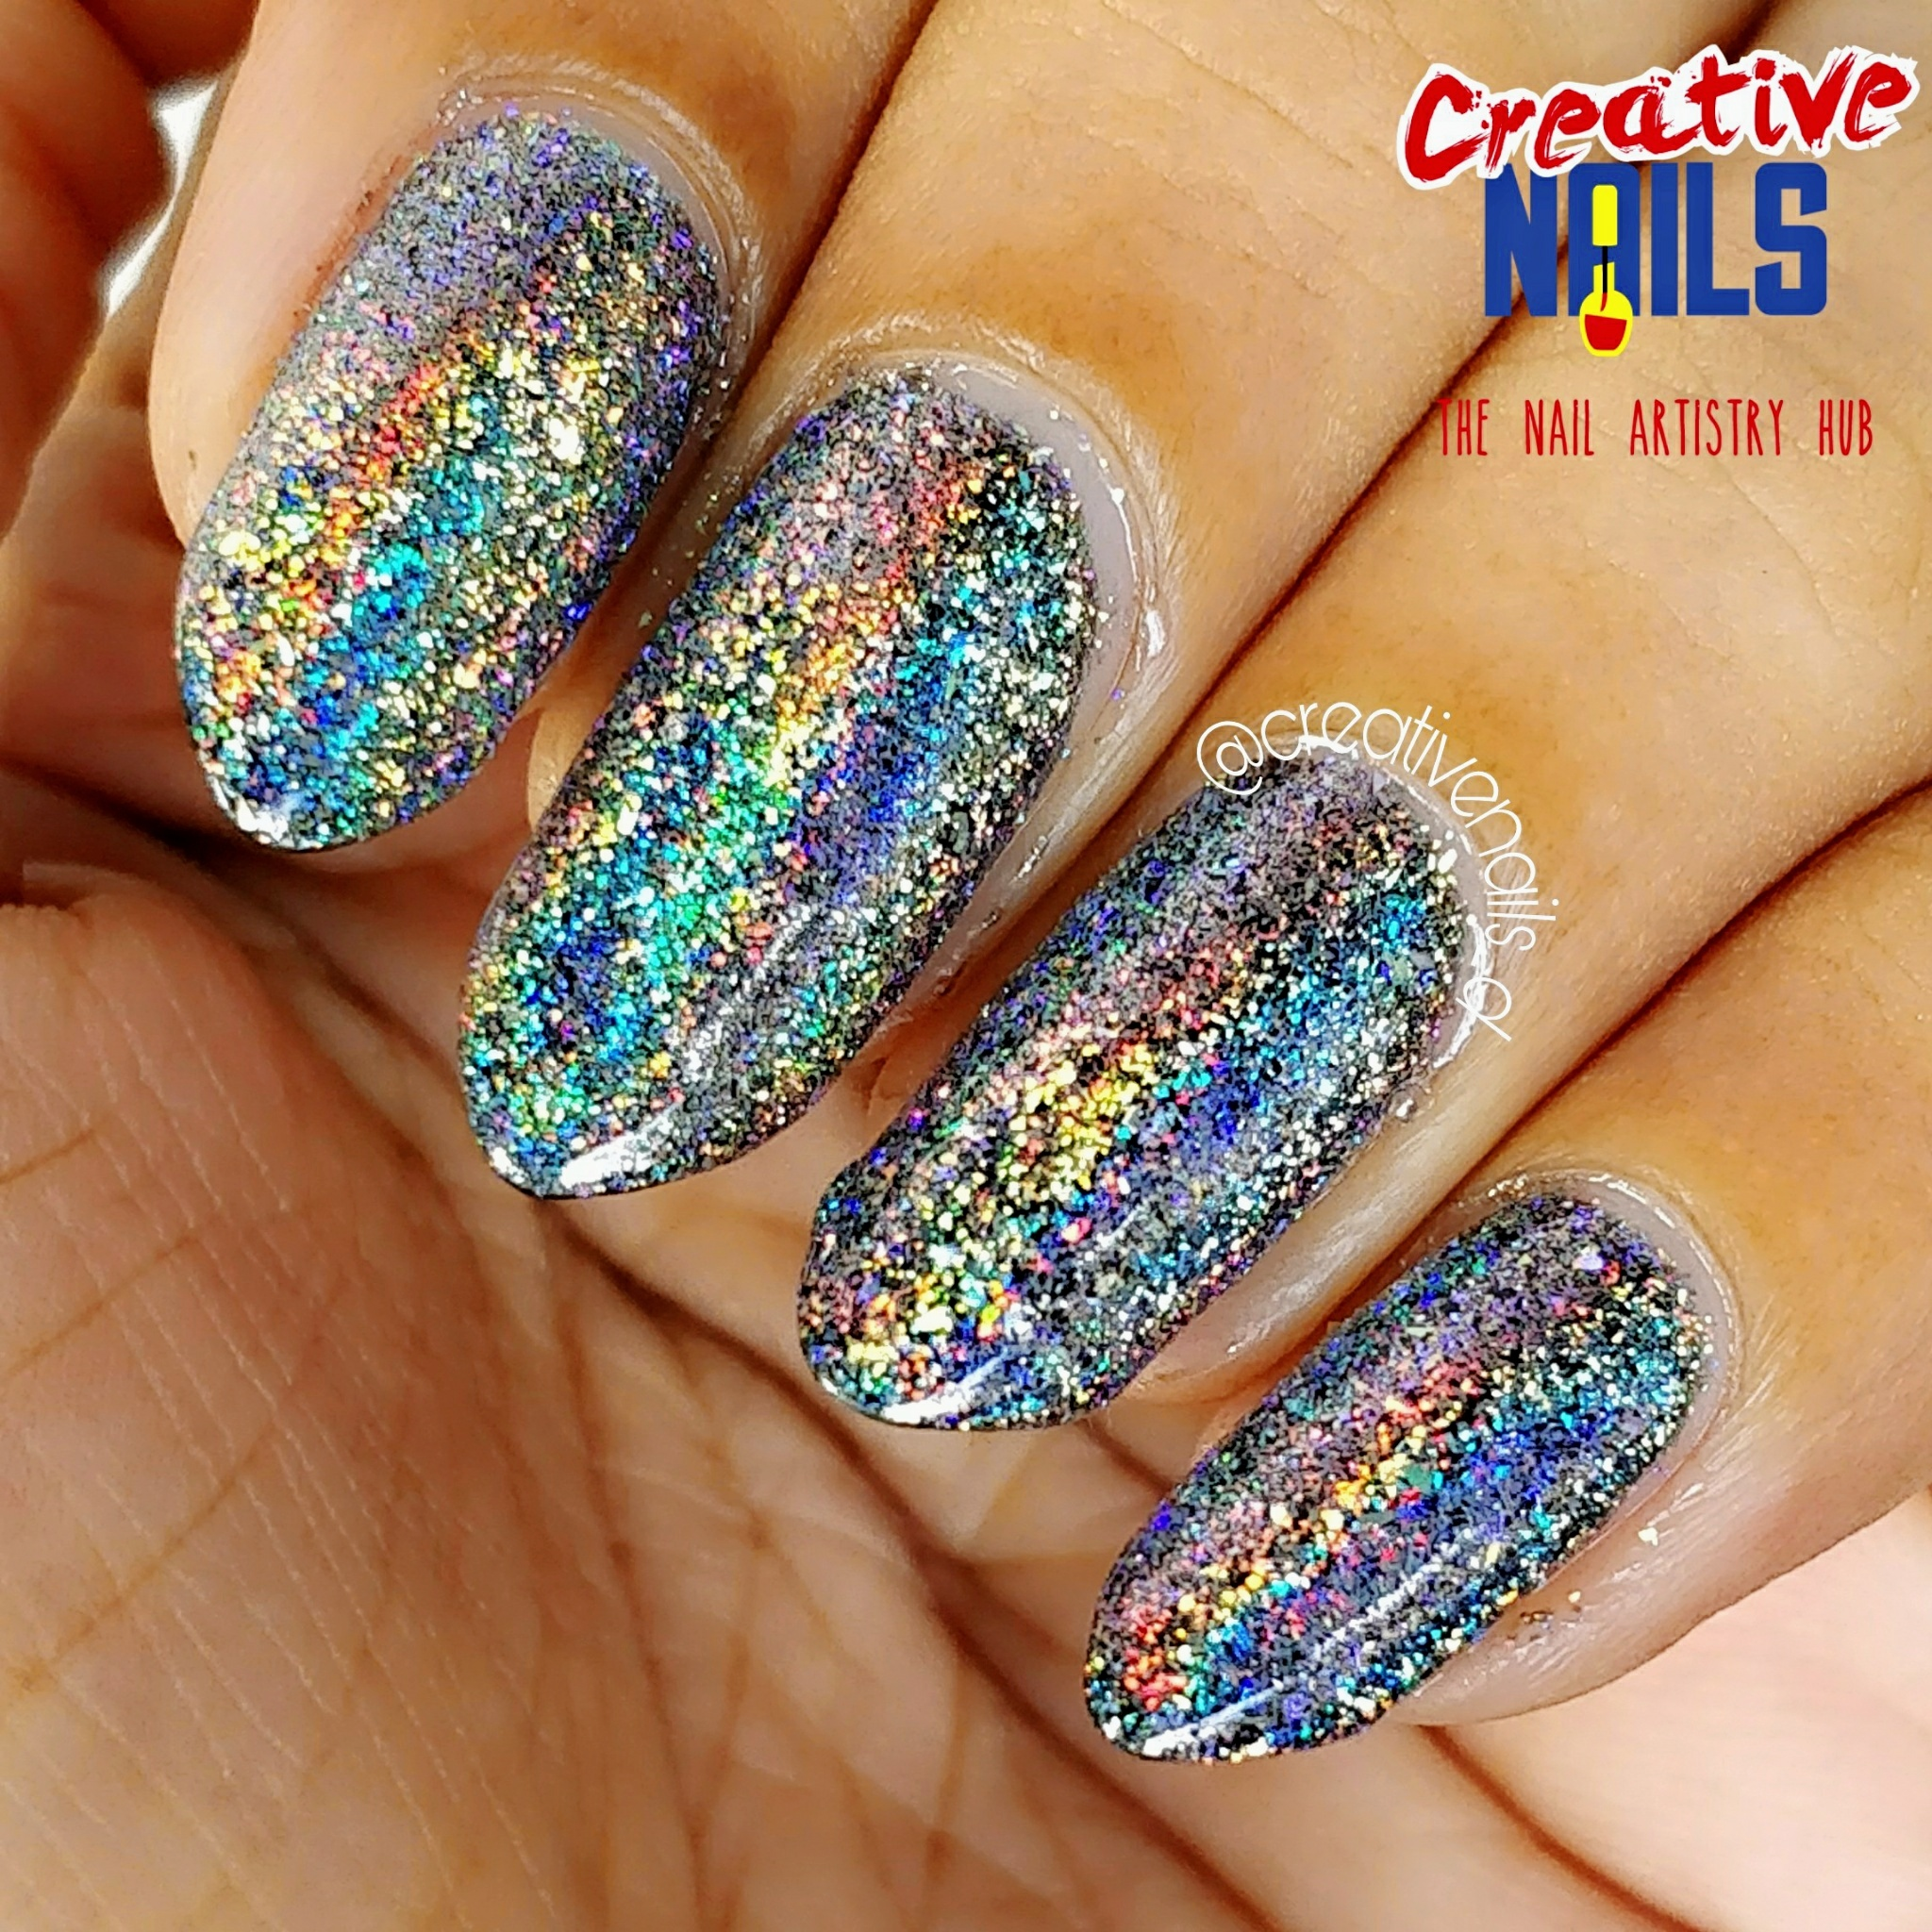 Holographic Flakies Nail Art Clicked In Sunlight